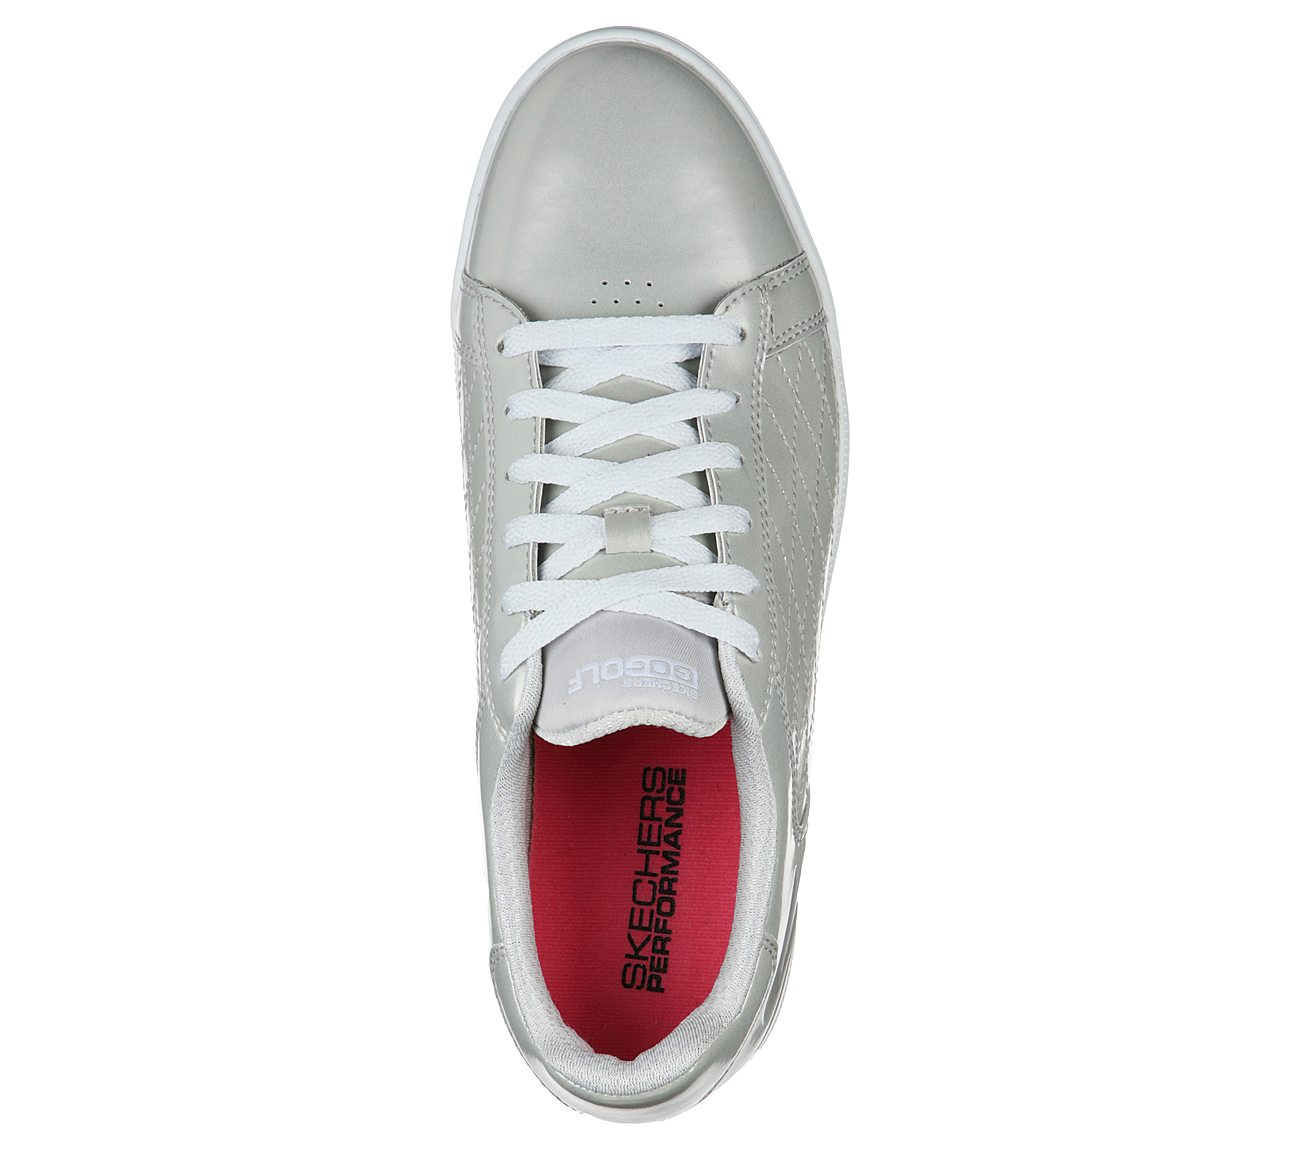 2a368c5667 Skechers GO GOLF Drive - Shine. Click/tap to zoom · Alternate View 1.  Alternate View 2